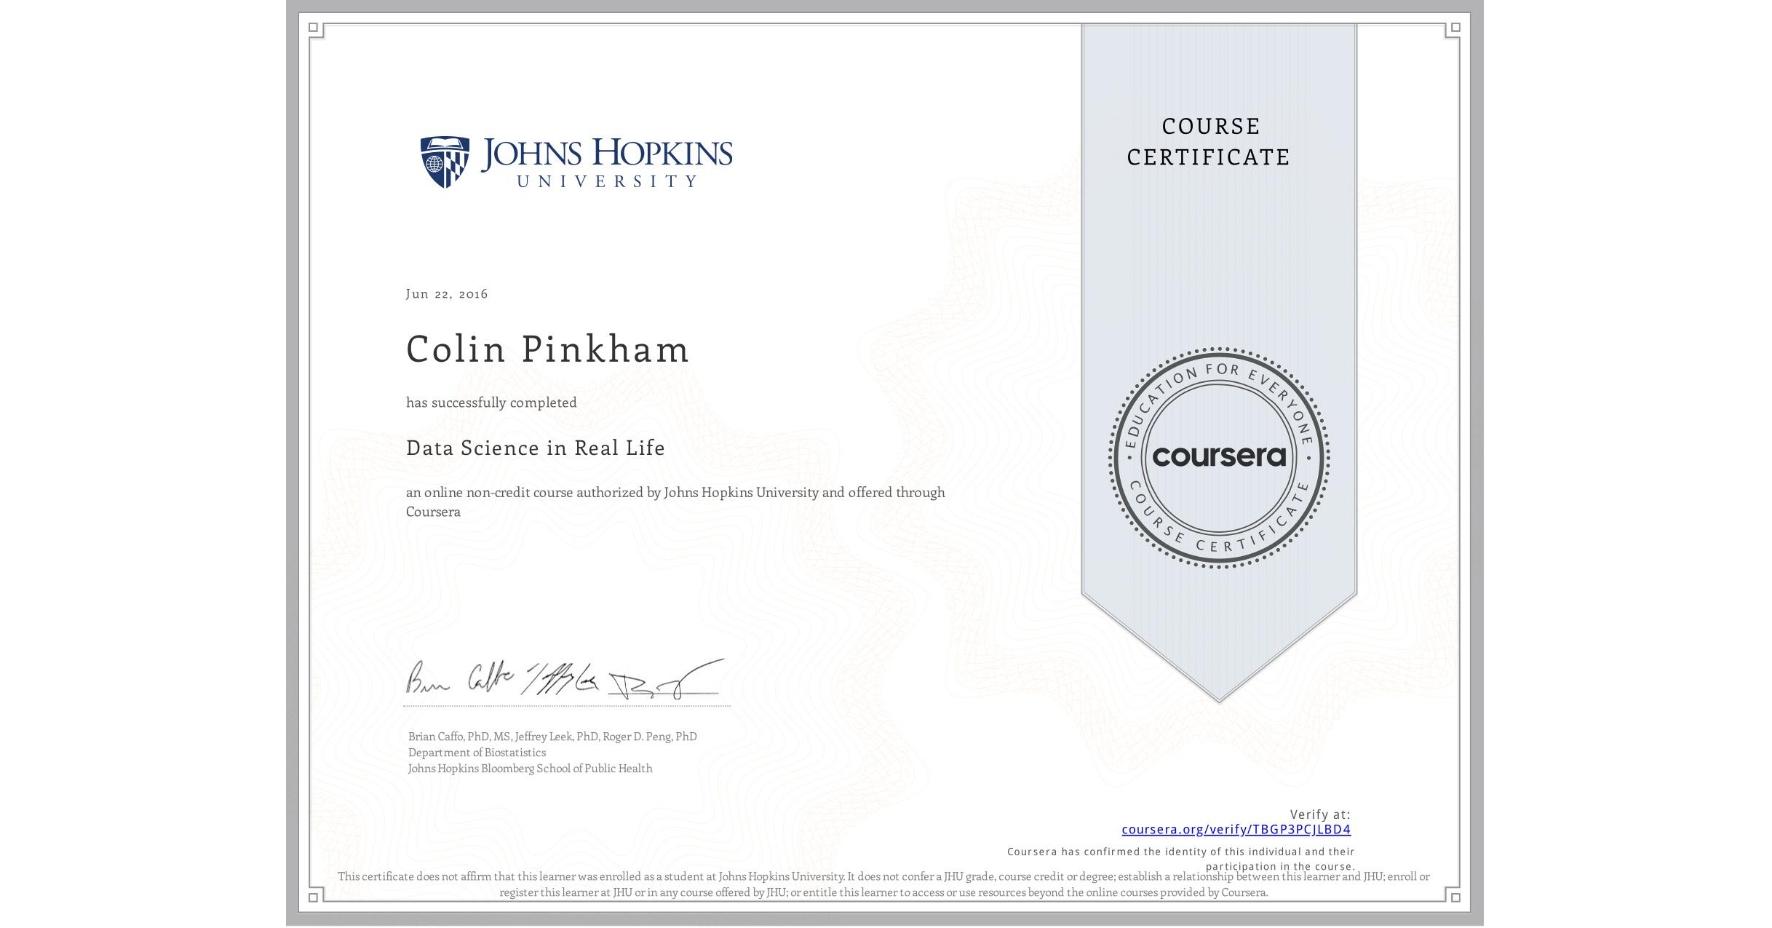 View certificate for Colin Pinkham, Data Science in Real Life, an online non-credit course authorized by Johns Hopkins University and offered through Coursera